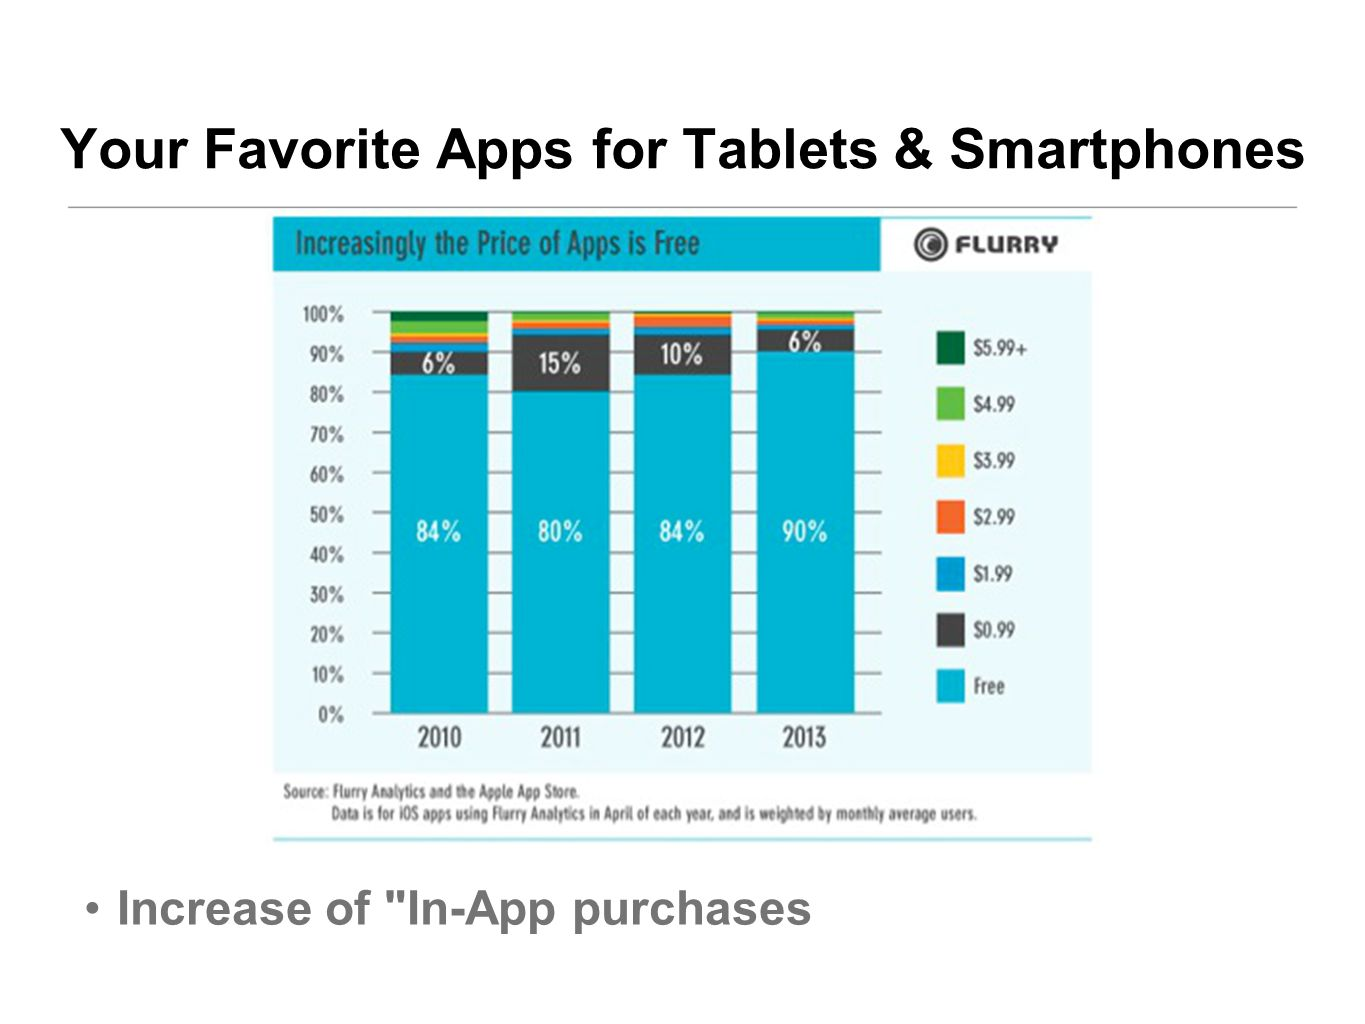 Increase of In-App purchases